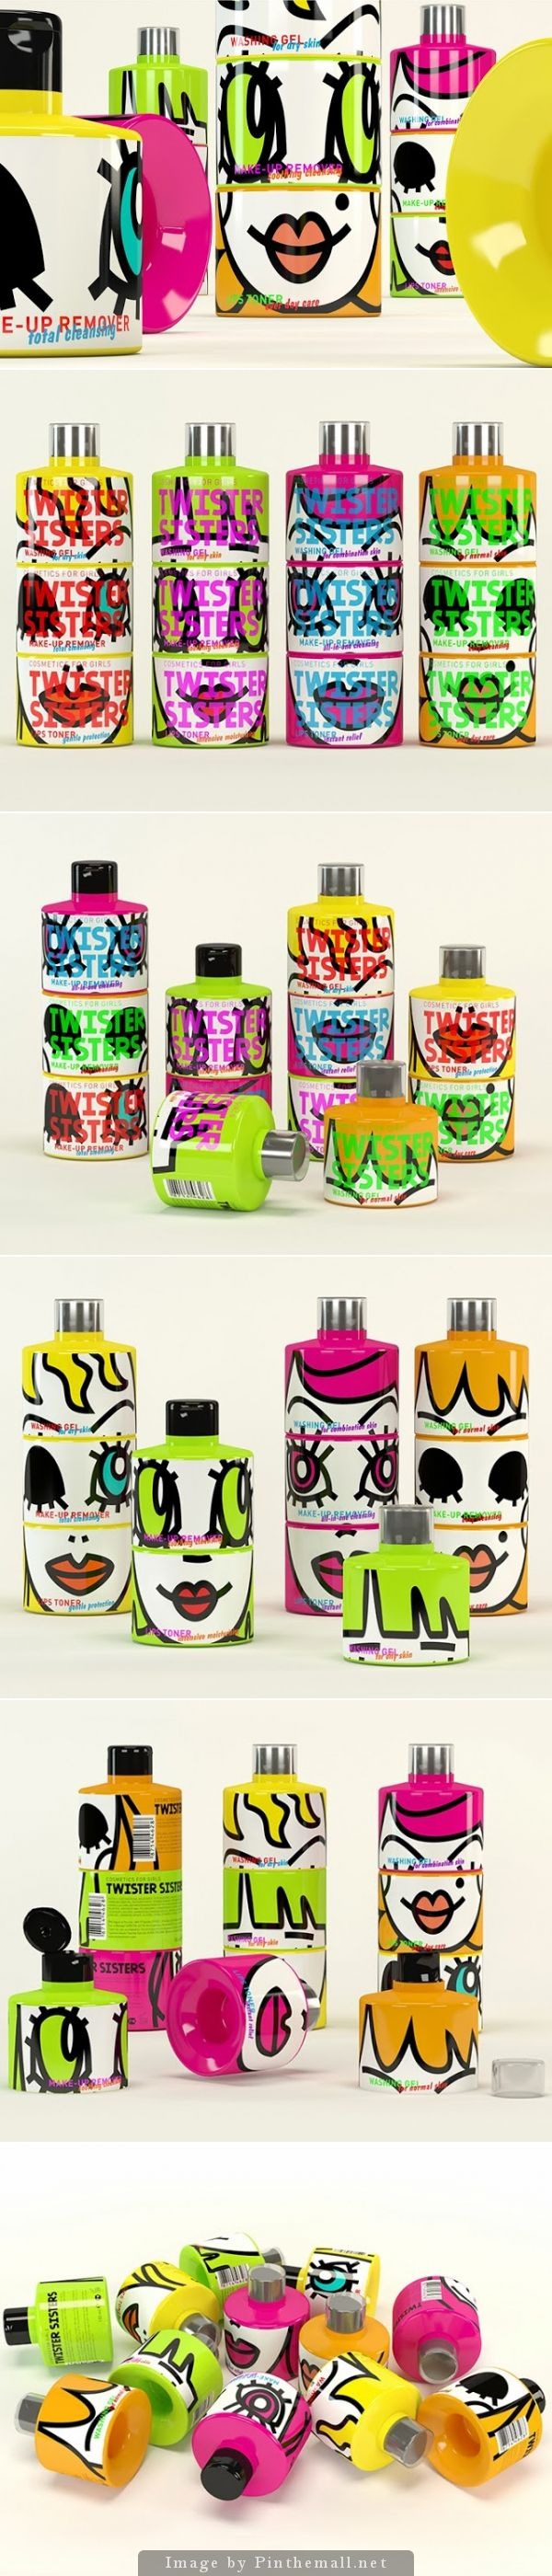 Twister Sisters I would buy this just for the packaging curated by Packaging Diva PD : )